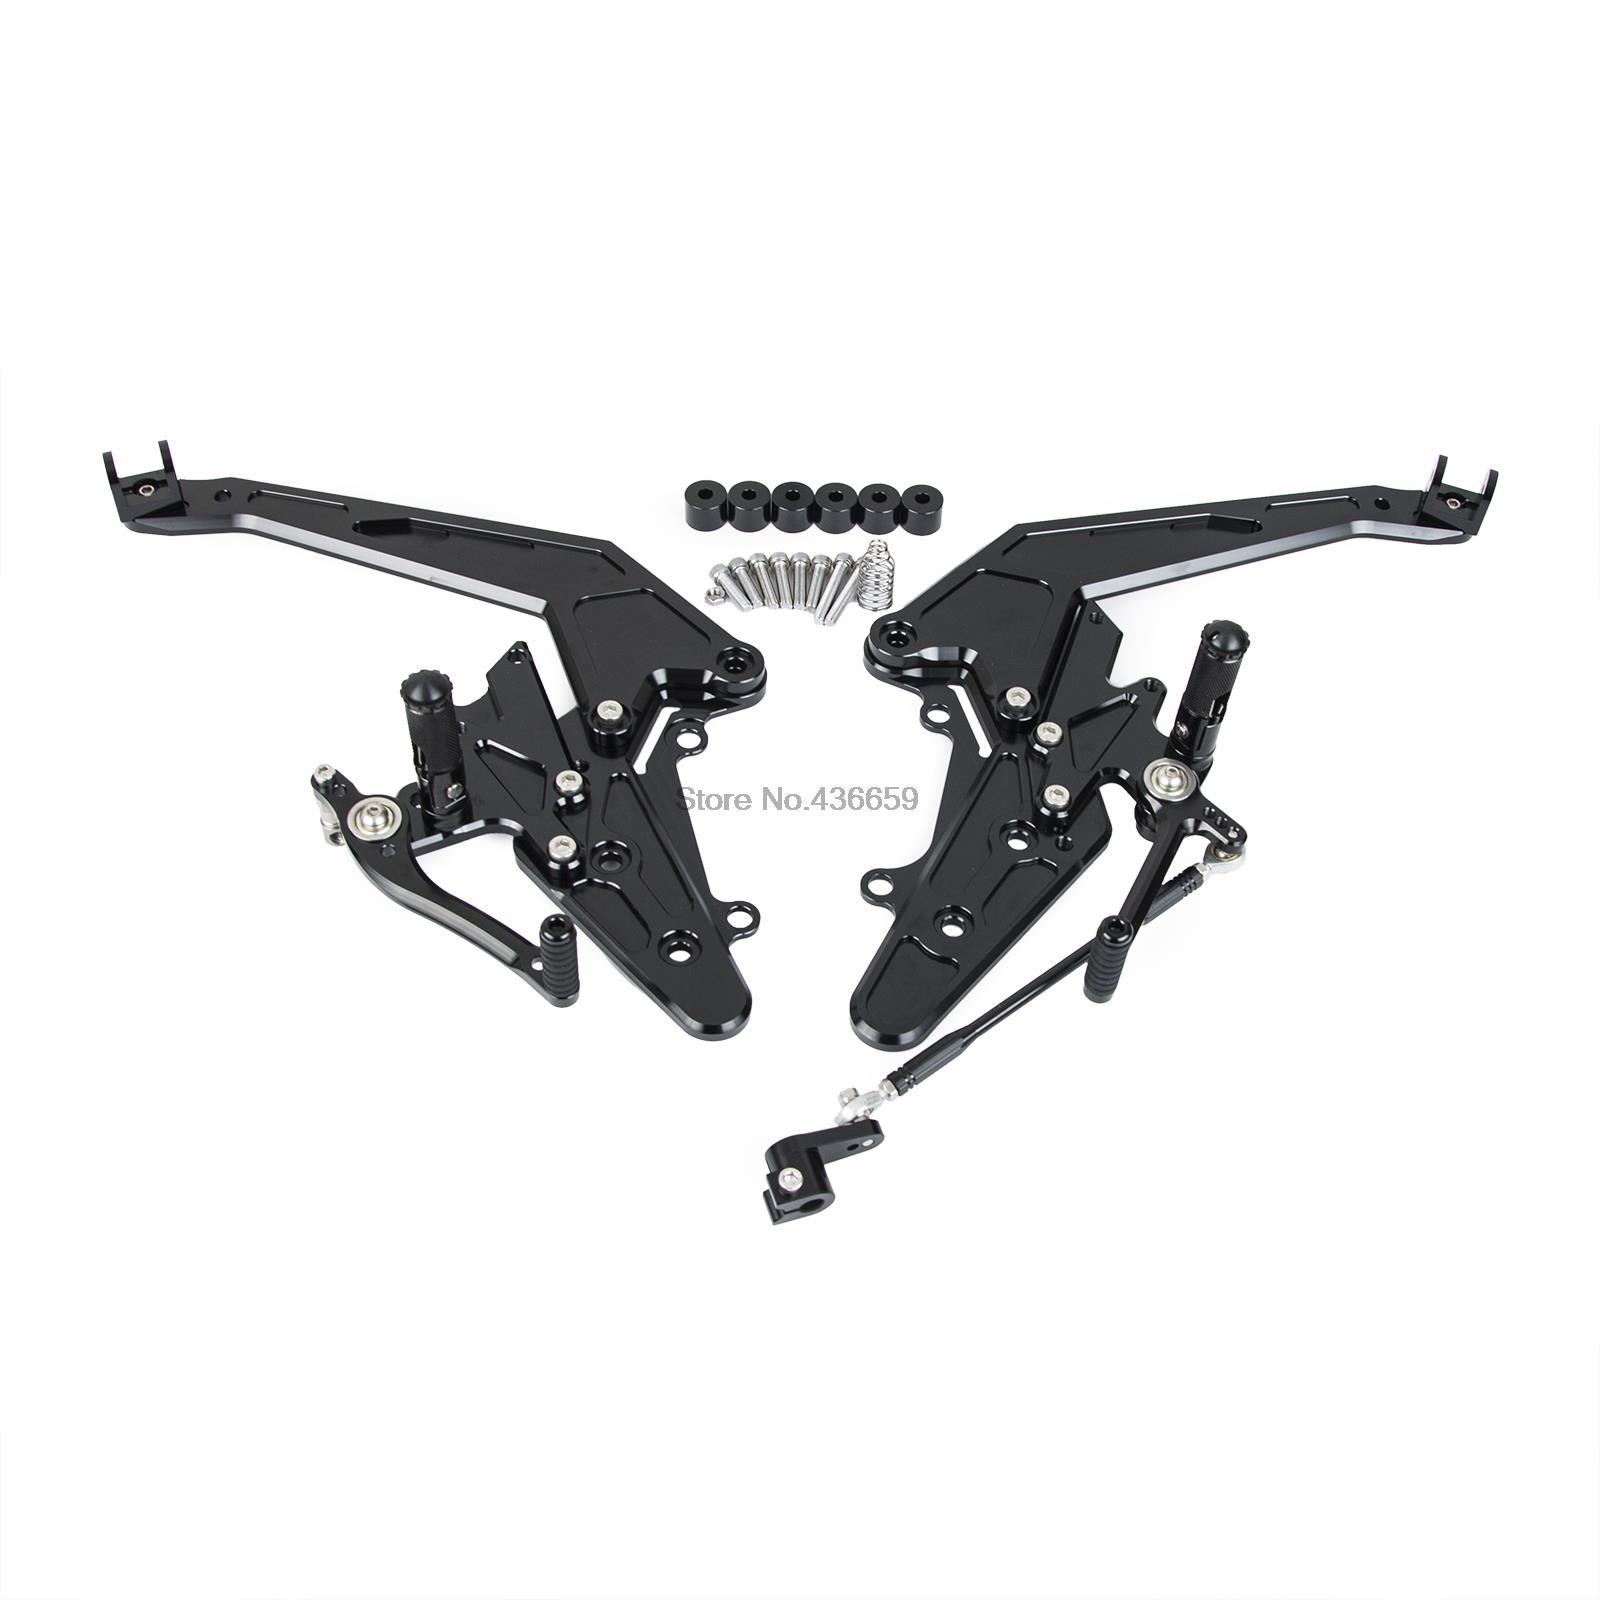 NICECNC CNC Rear Sets Foot Peg Footrests Footpeg for Kawasaki Ninja 650 EX650 ER6F ER6N 2012 - 2016 2013 2014 2015 ER 6F 6N цена 2017